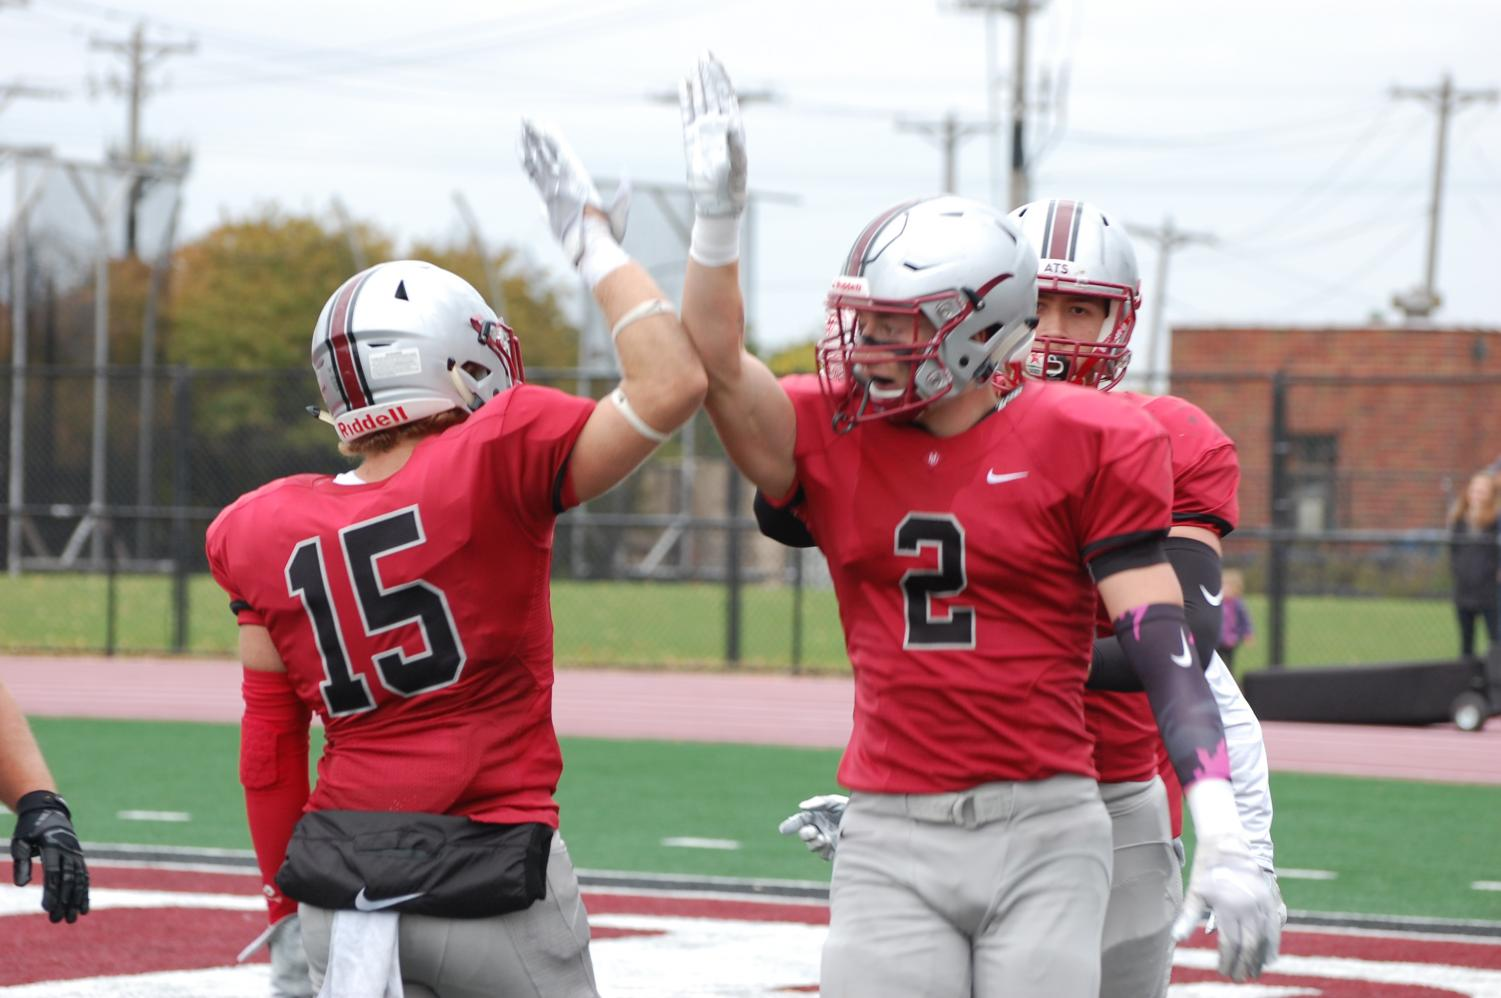 Seniors Jordan Deno and Dalton Pakkala celebrate after a big play.